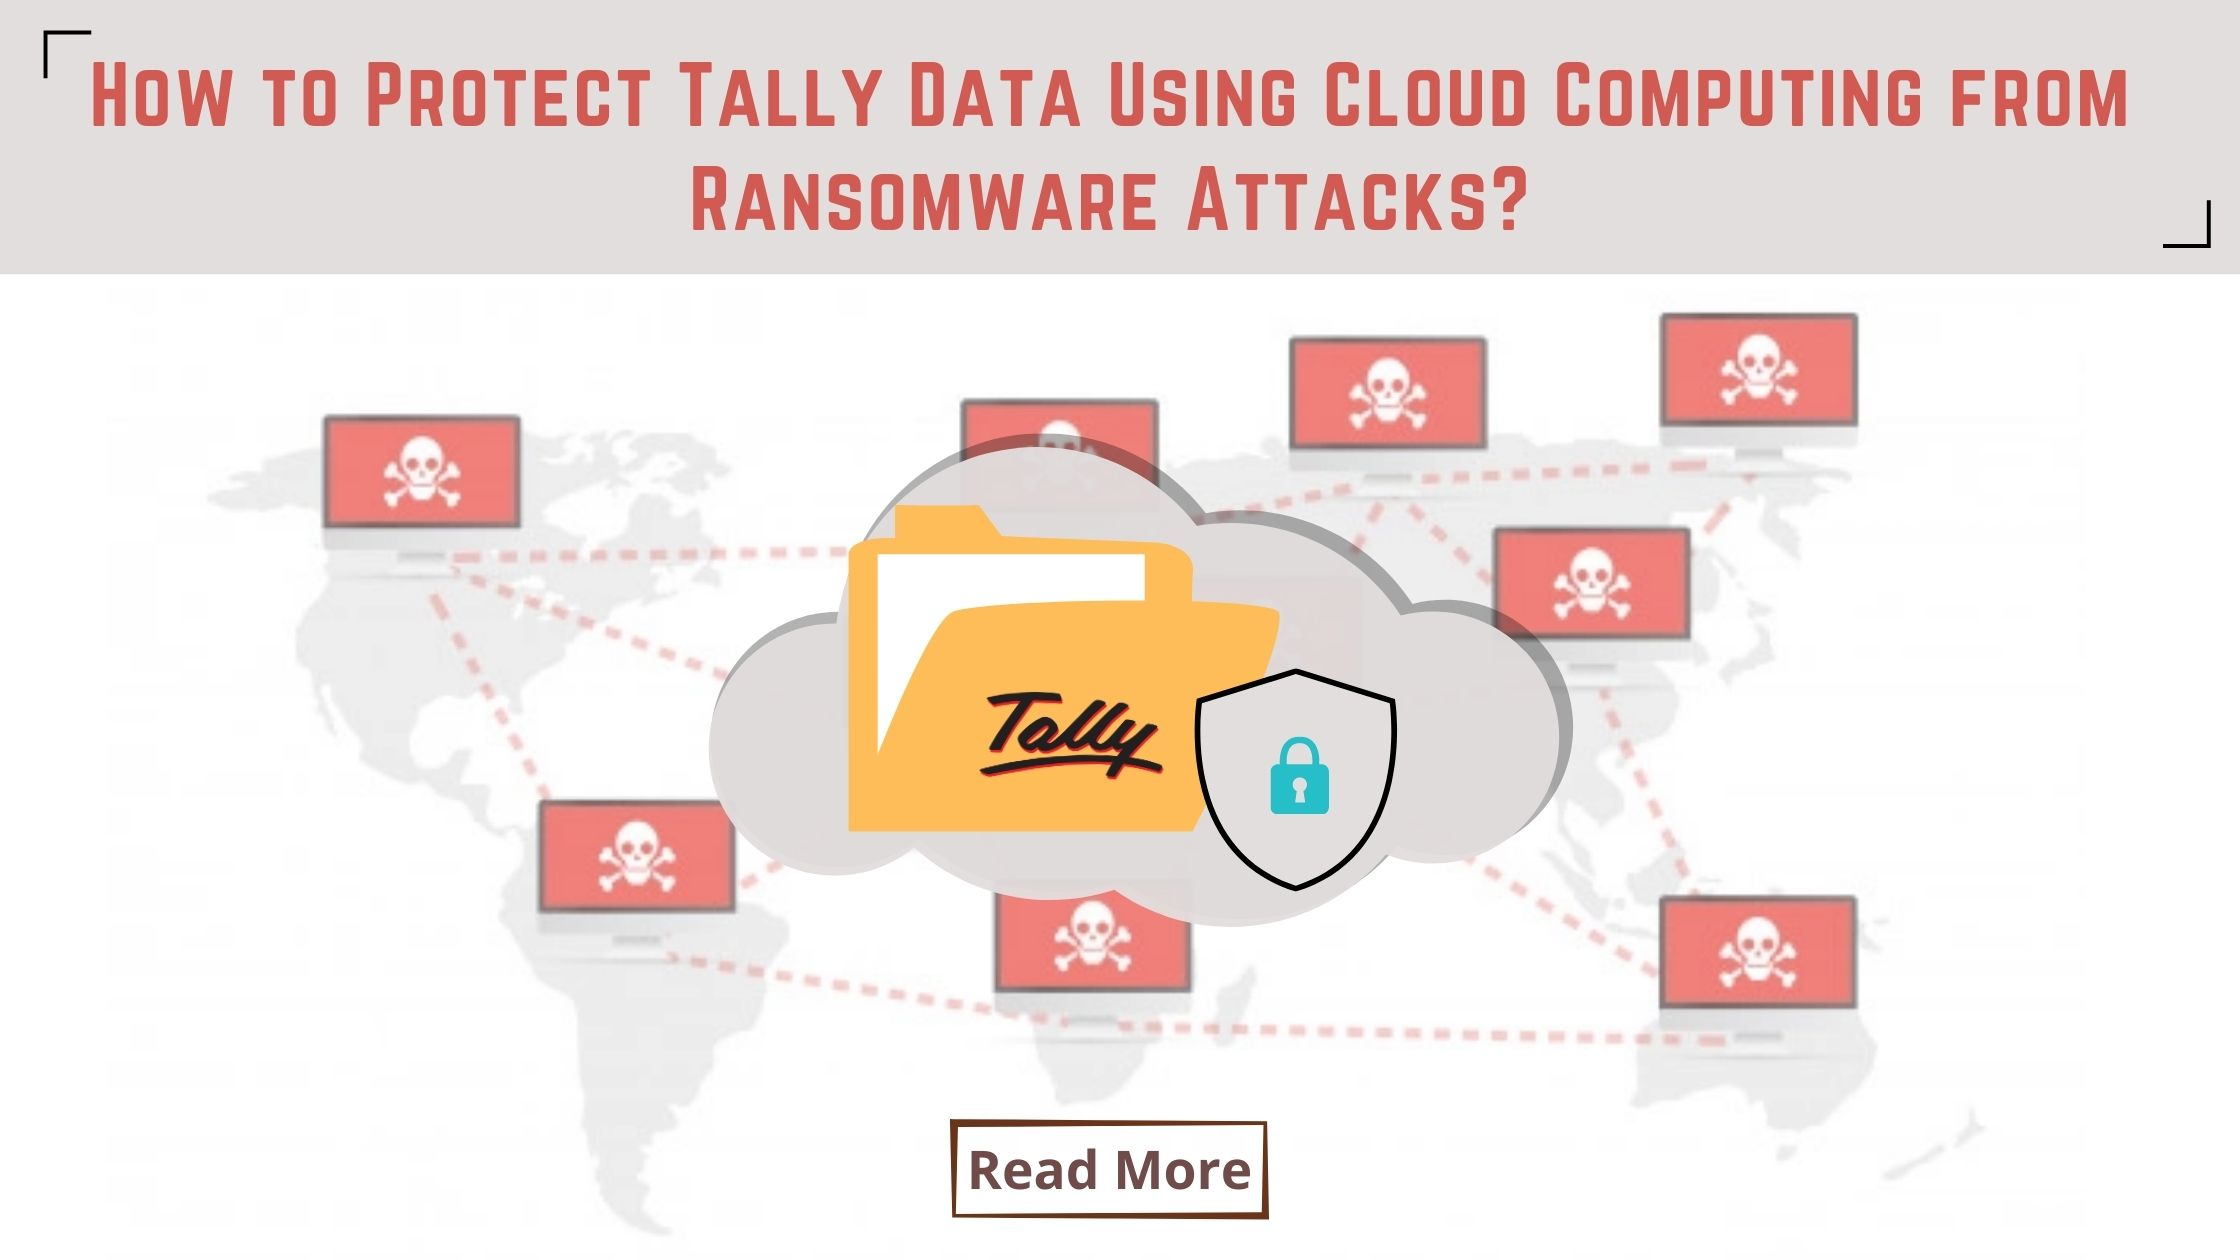 Protect Tally Data Using Cloud Computing